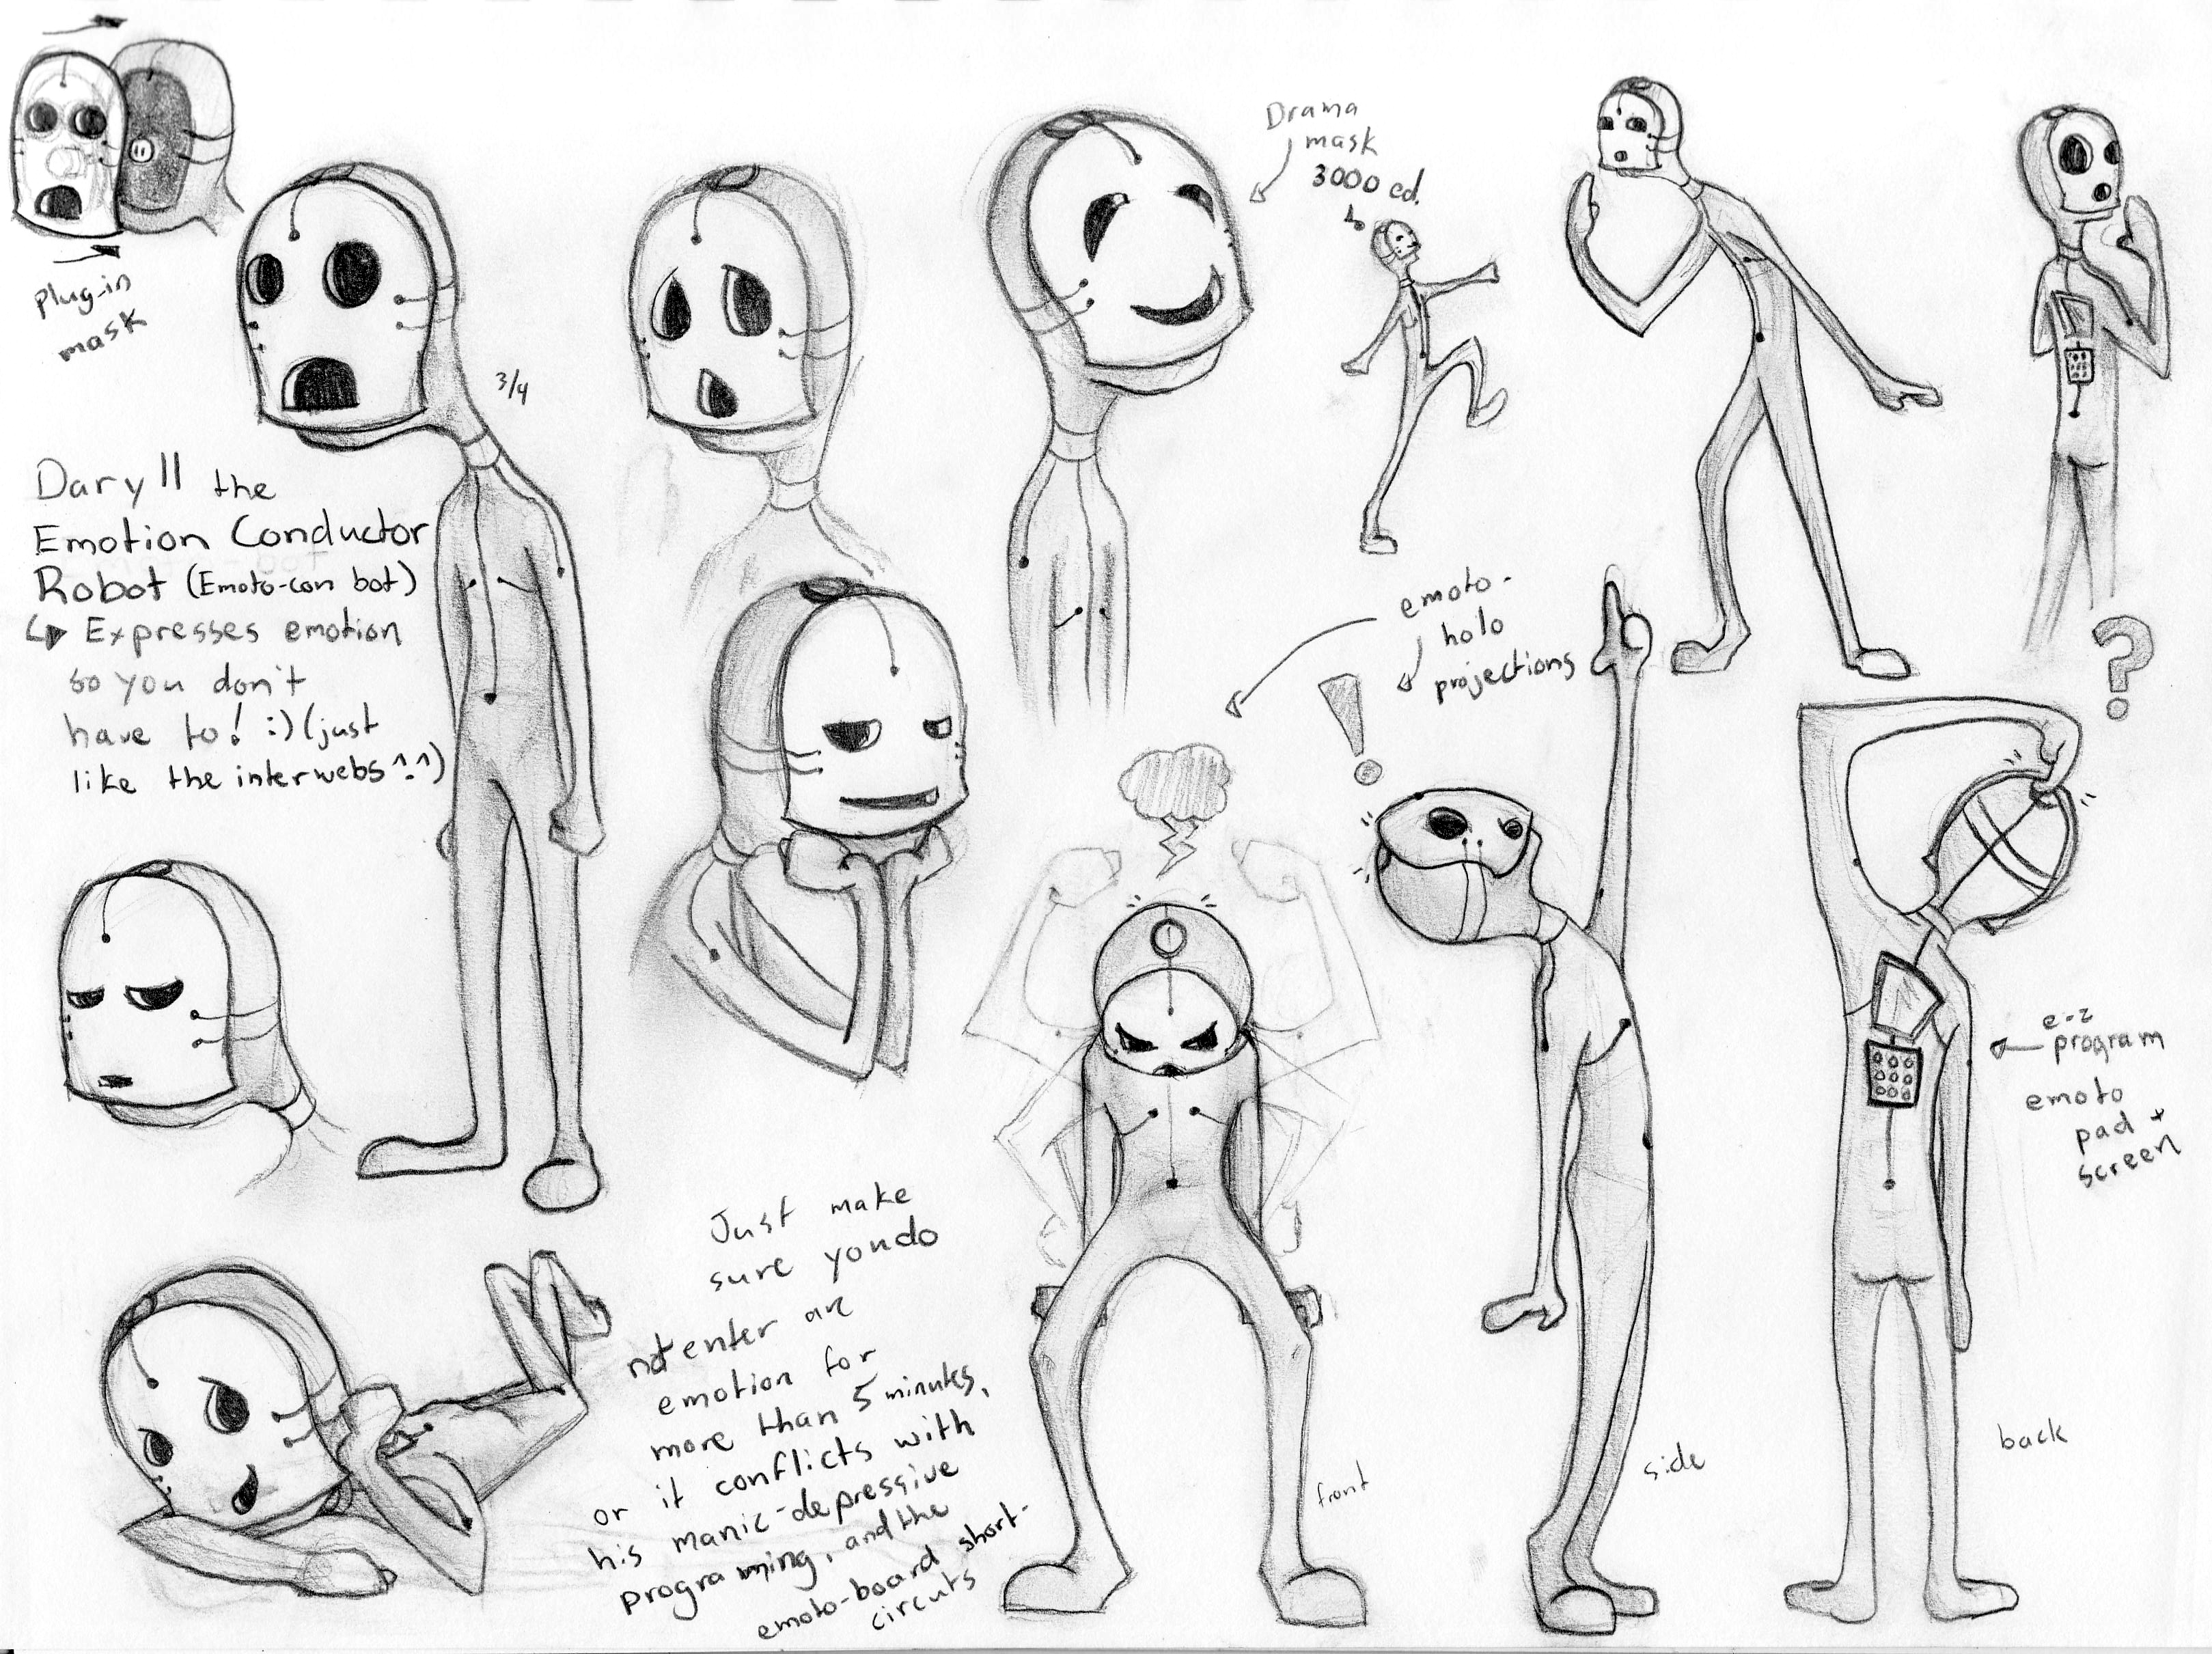 Character Design Description : Daryll the emotion conductor robot emily carr university